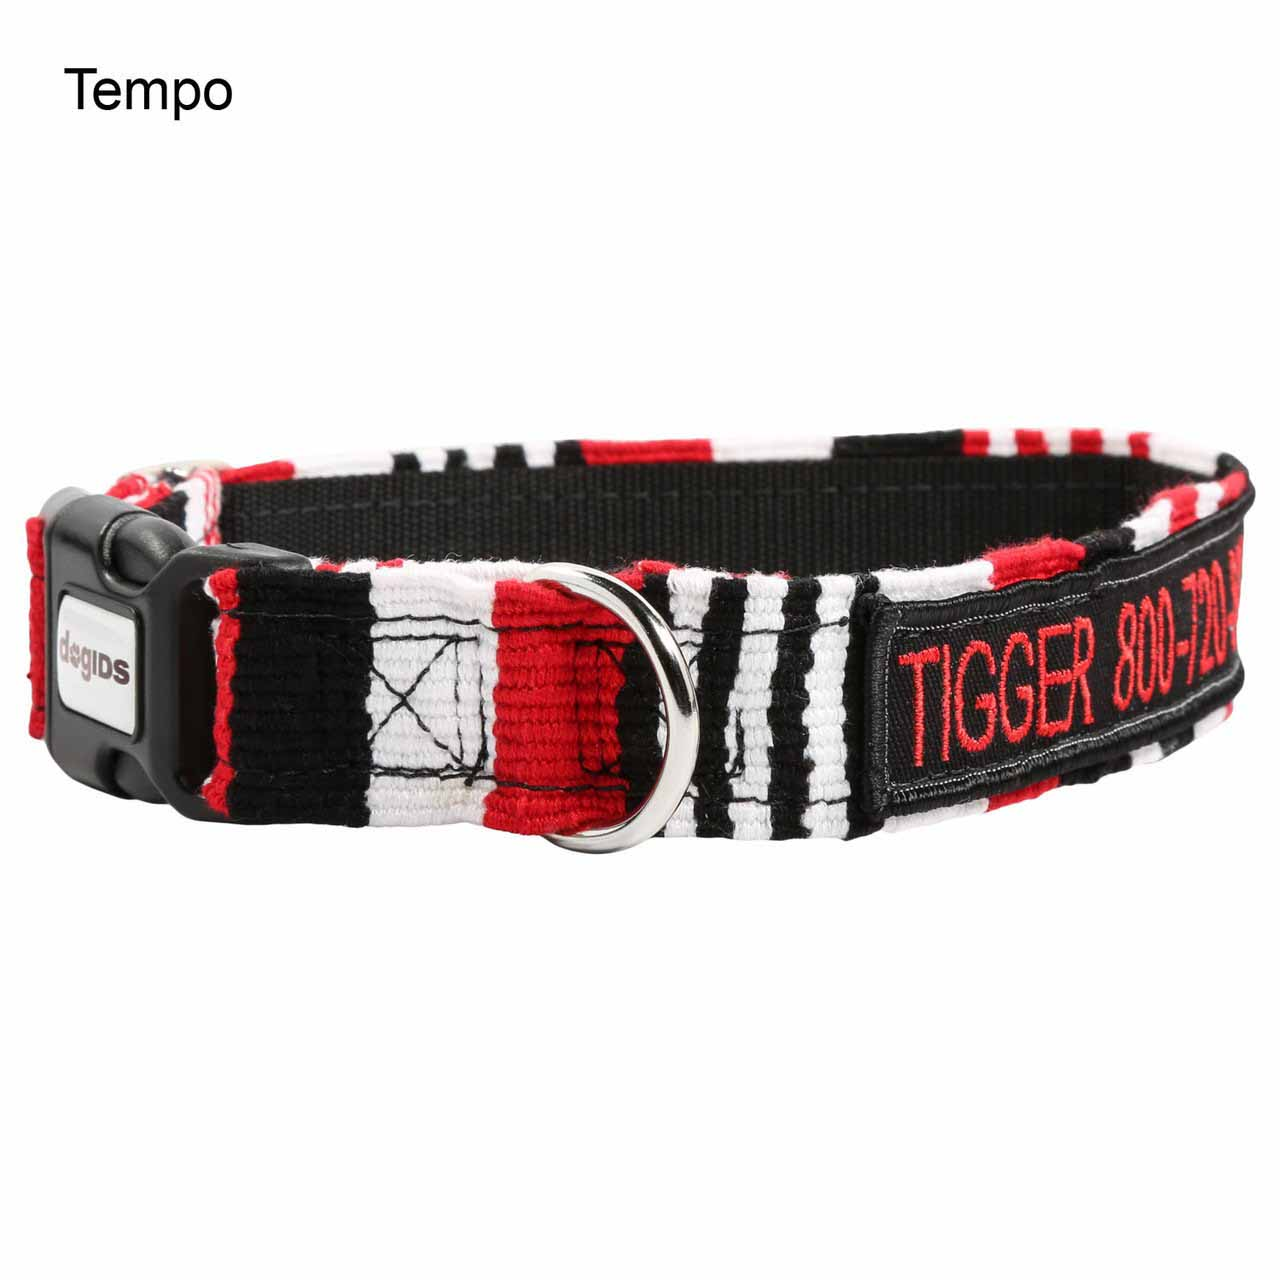 Embroidered Maya Personalized Dog Collar Tempo